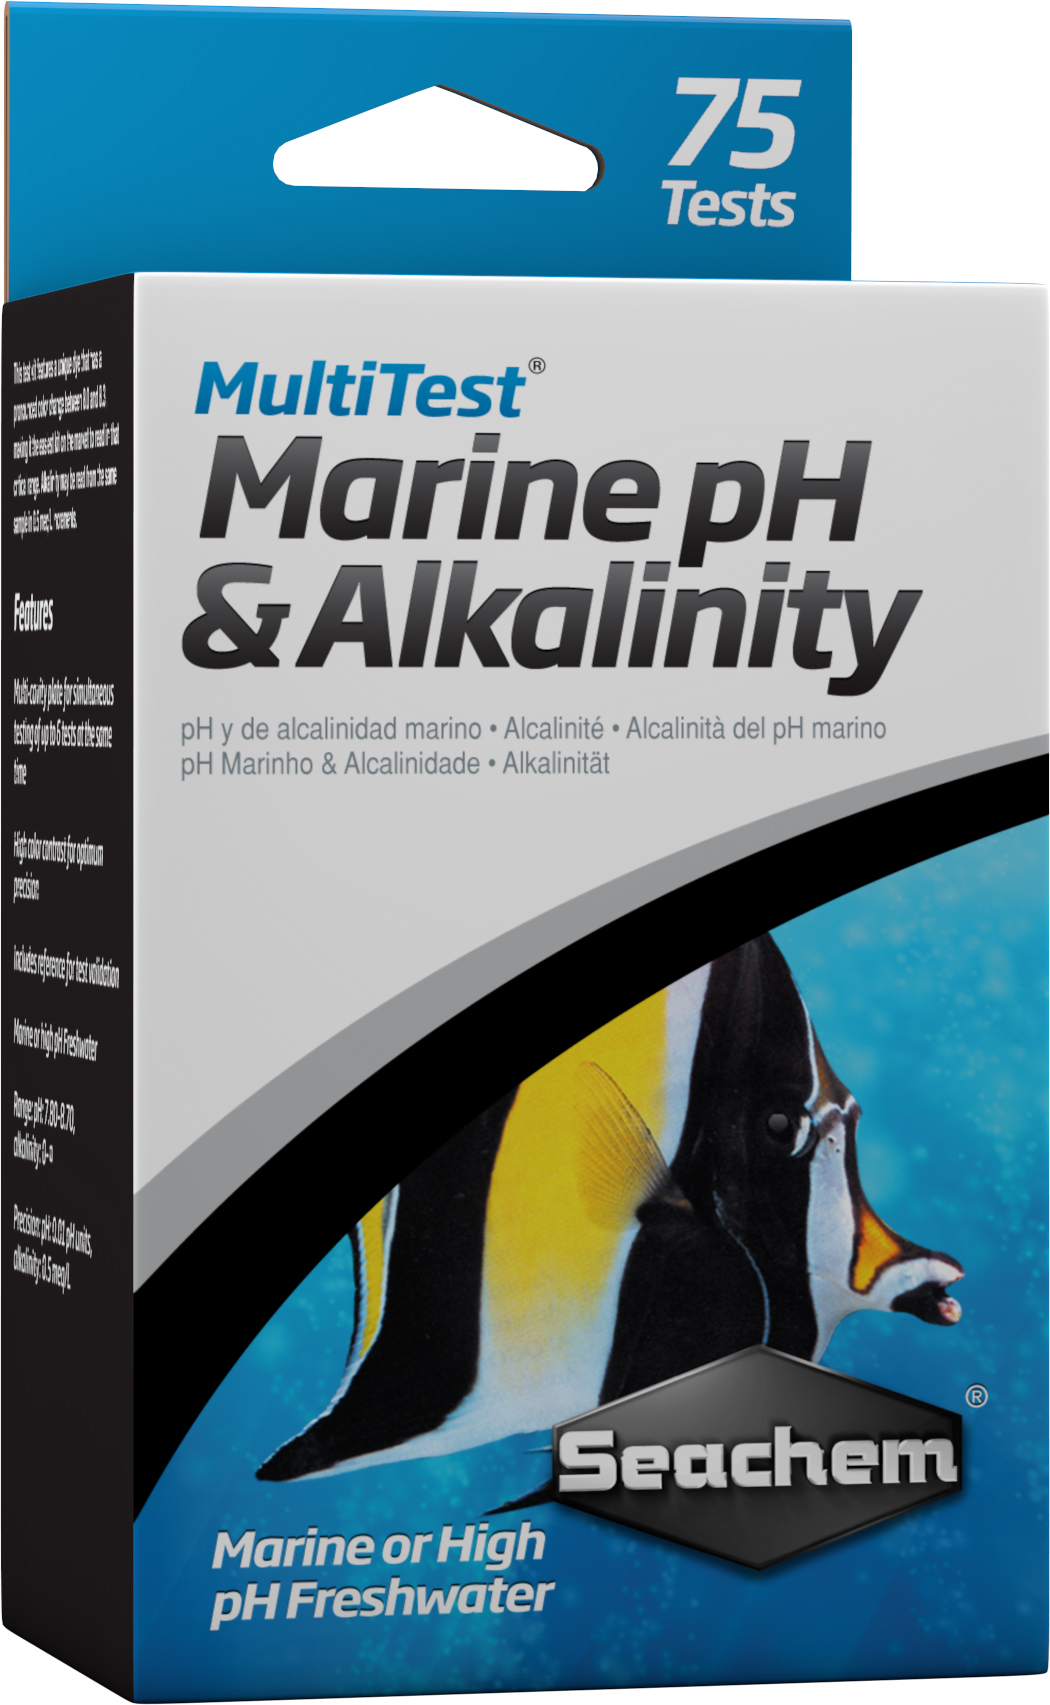 MT-Marine pH & Alkalinity